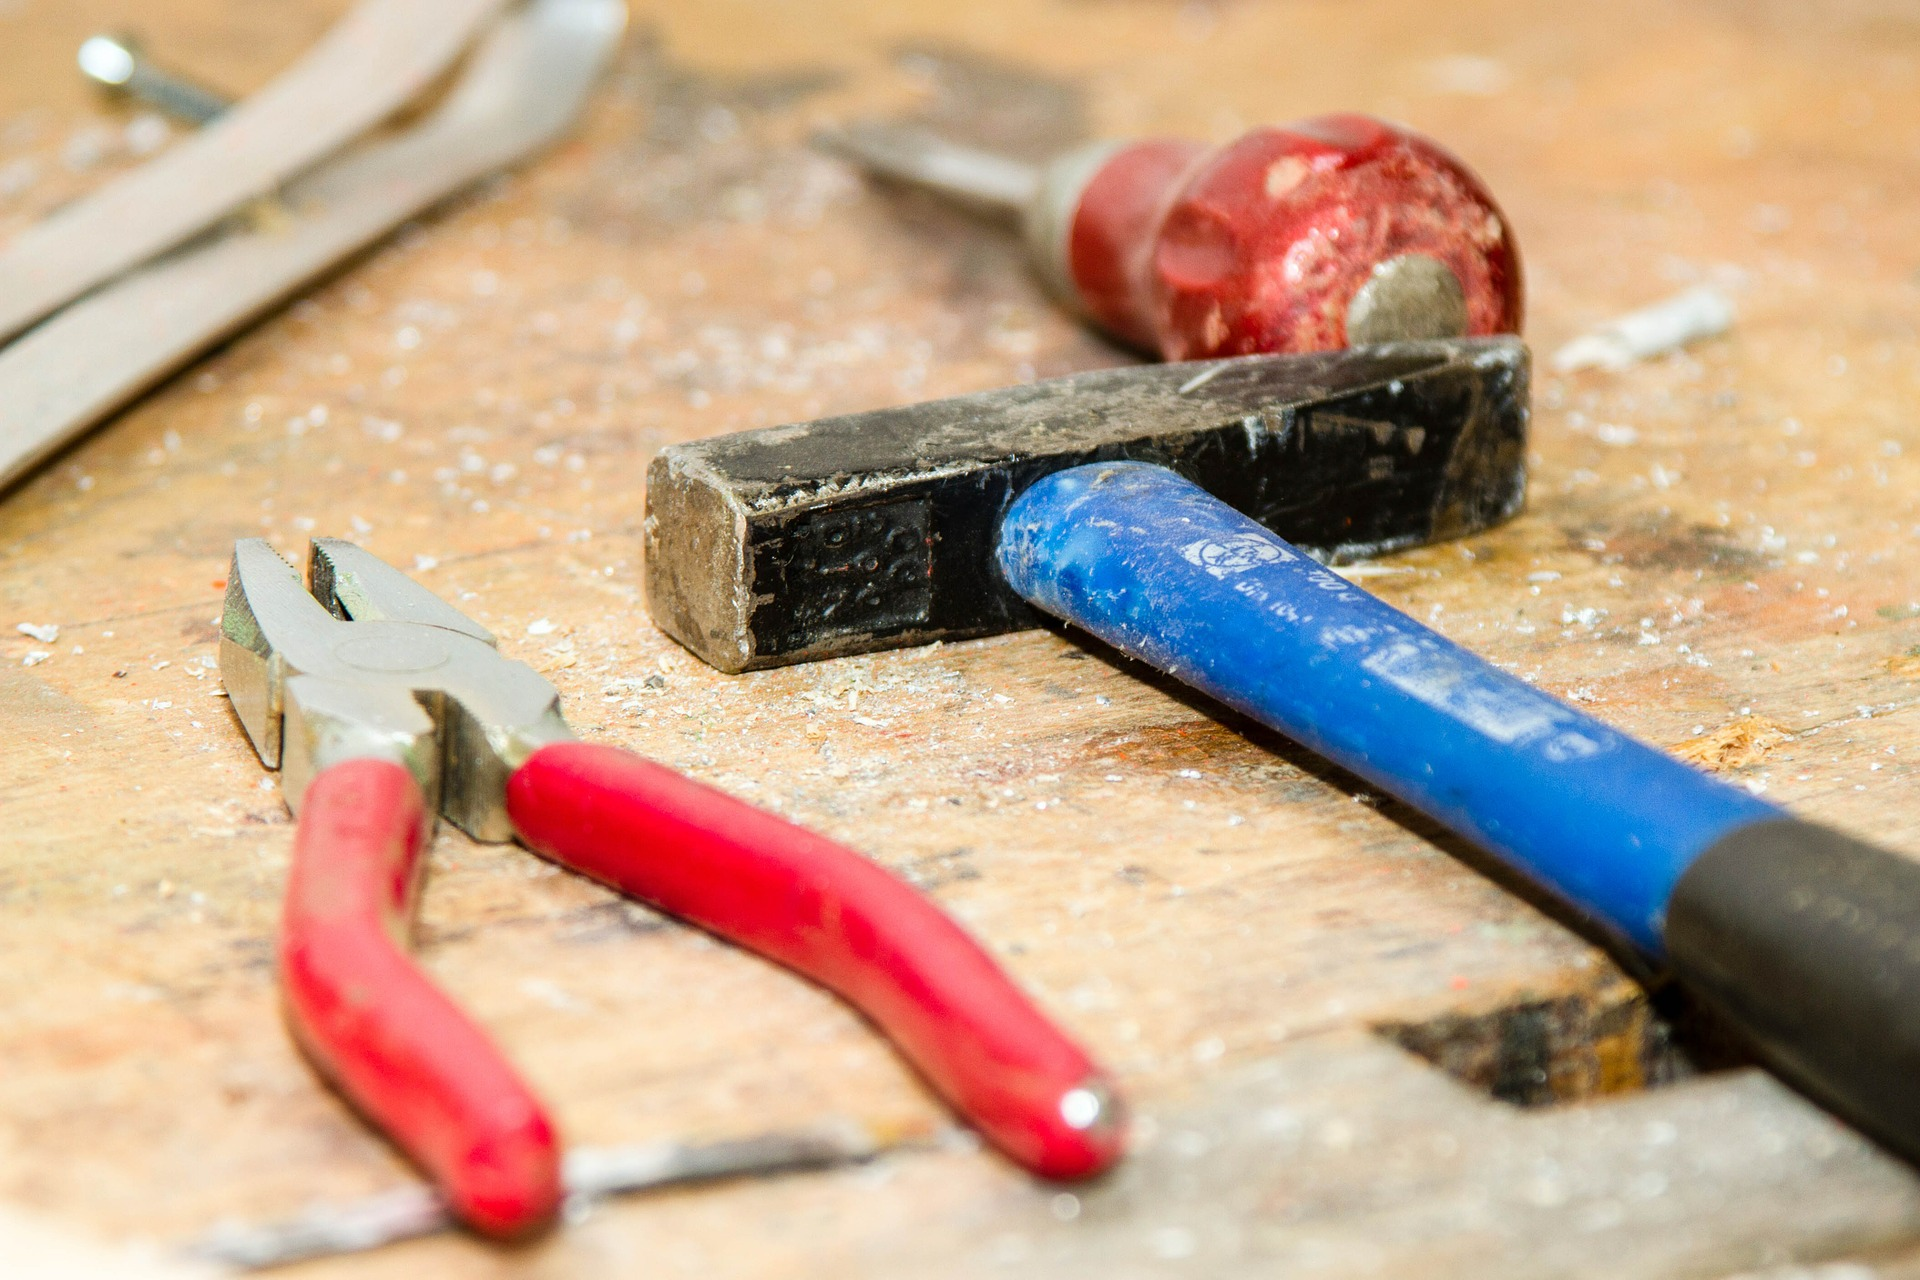 Tools to fix marketing remodeling company